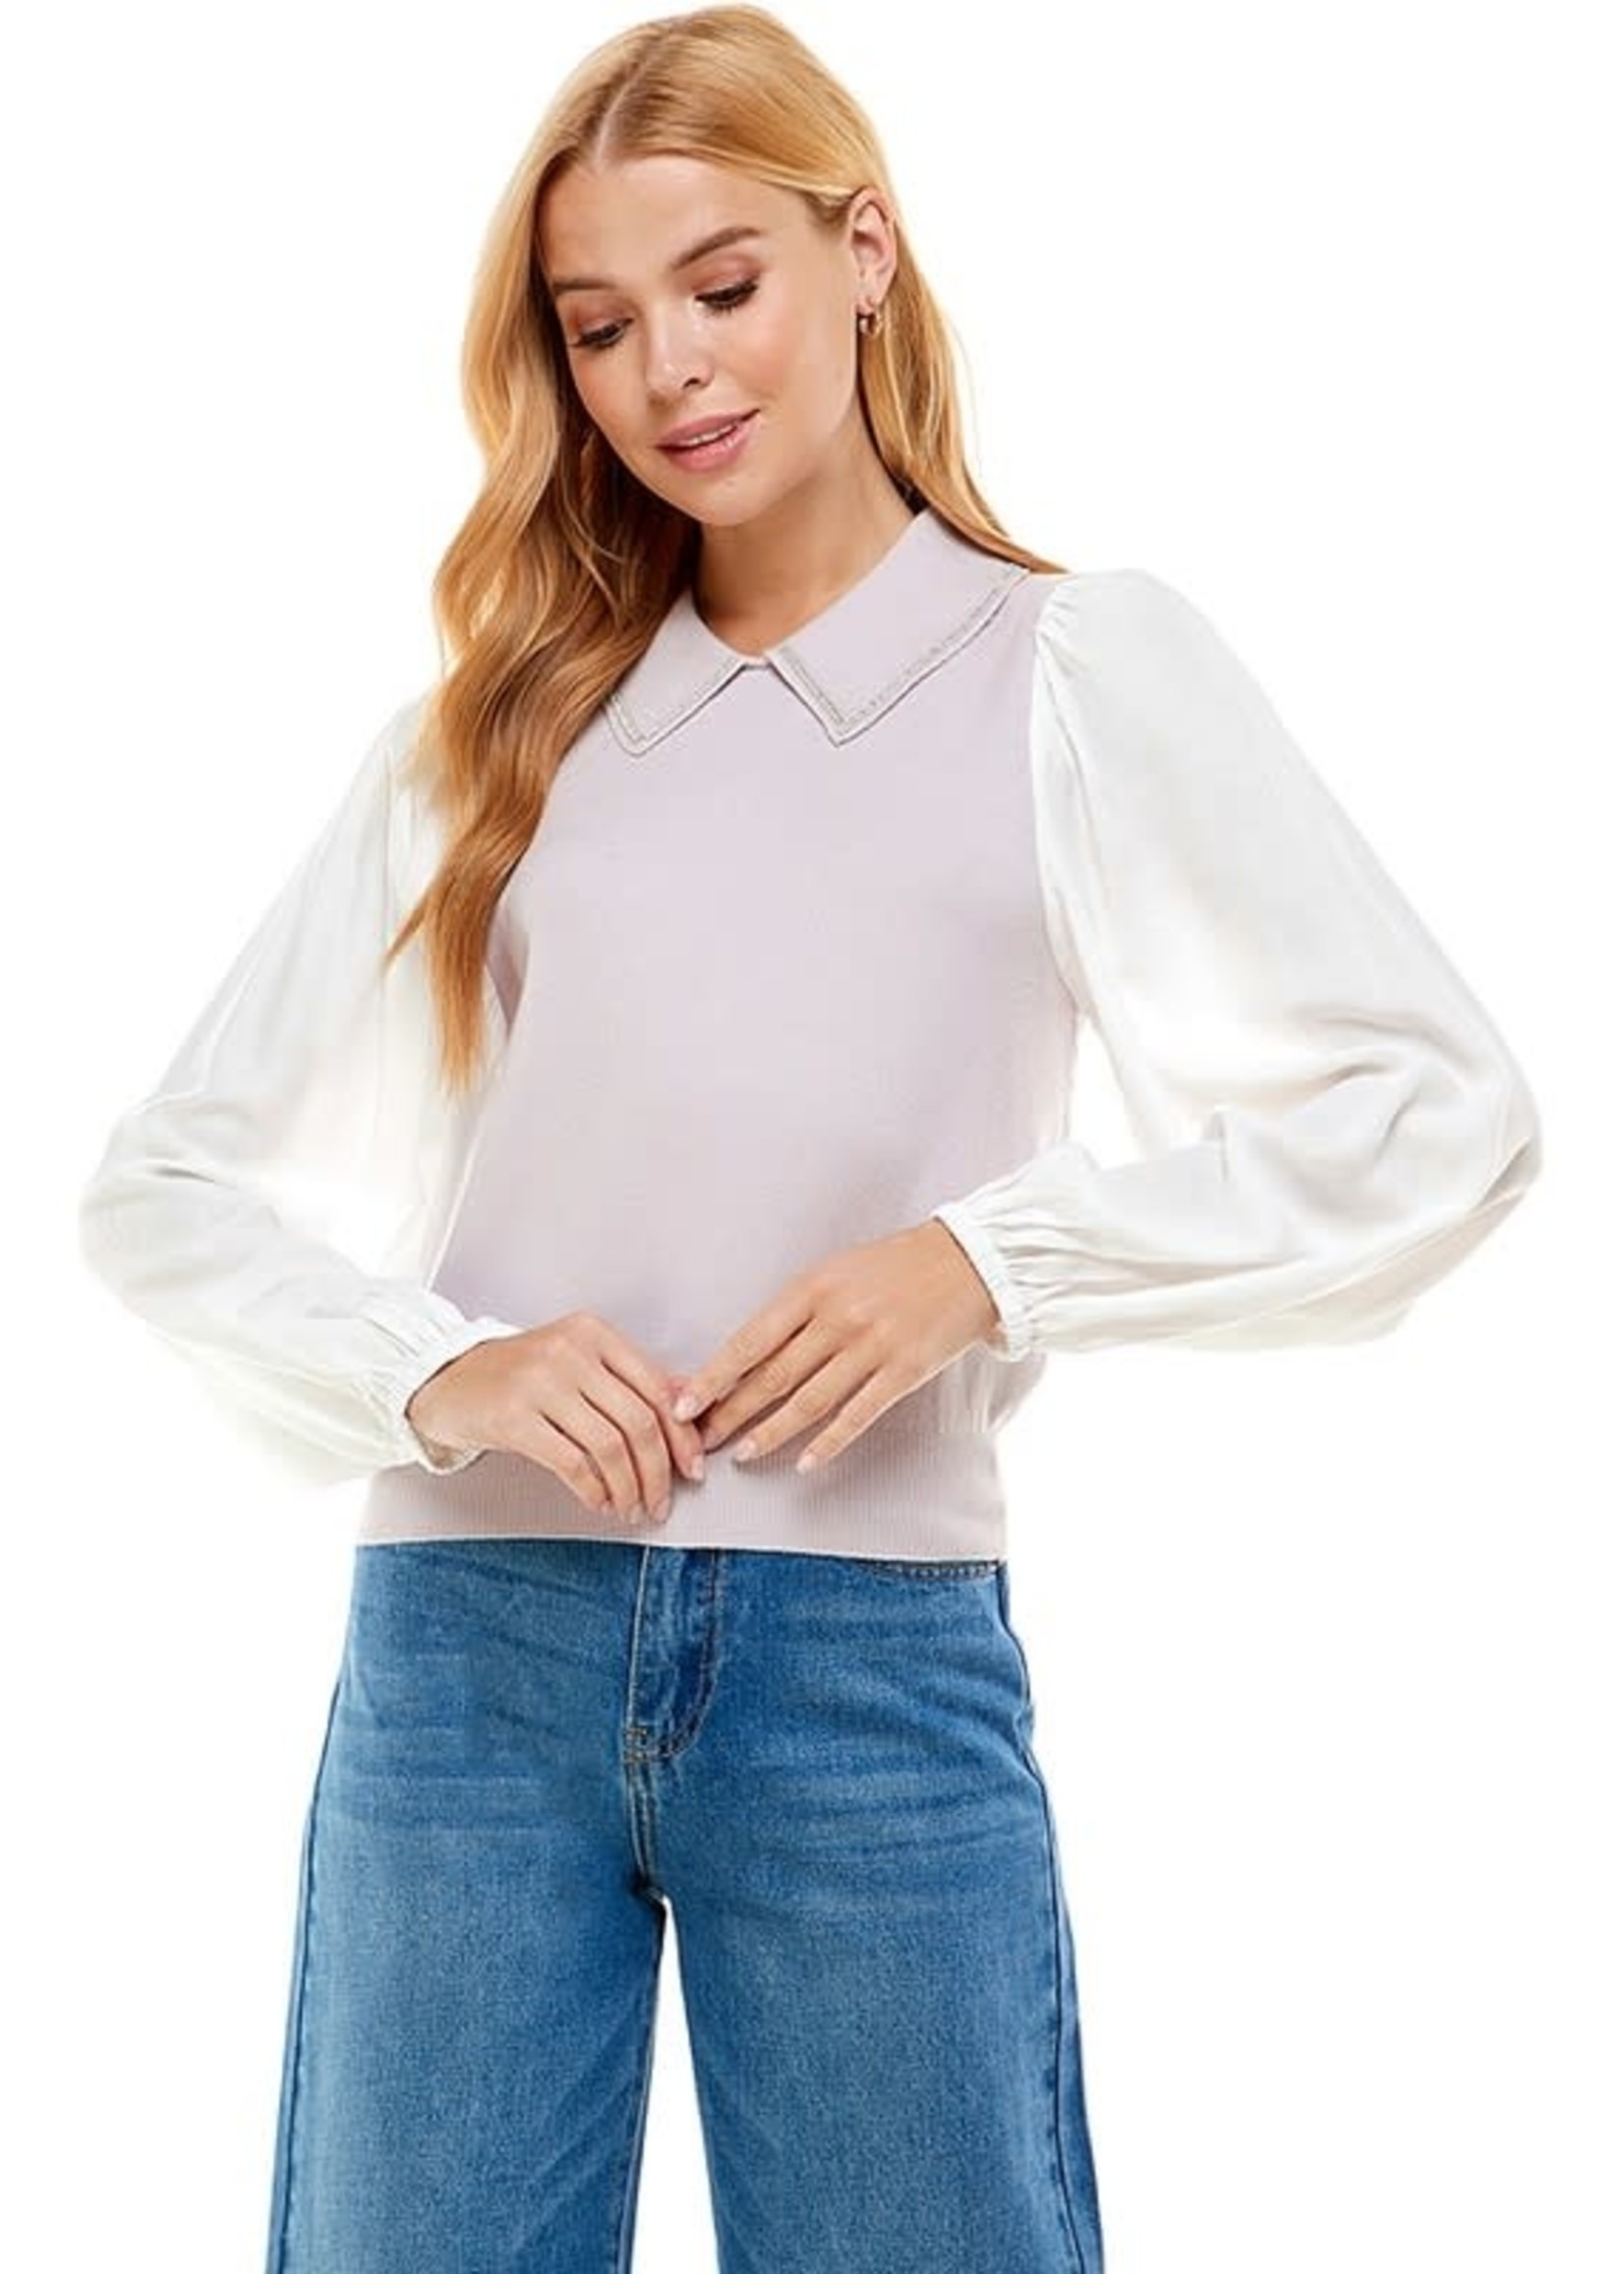 Ontwelfth Contrast Collared Puff Sleeve Knit Top - 1222634